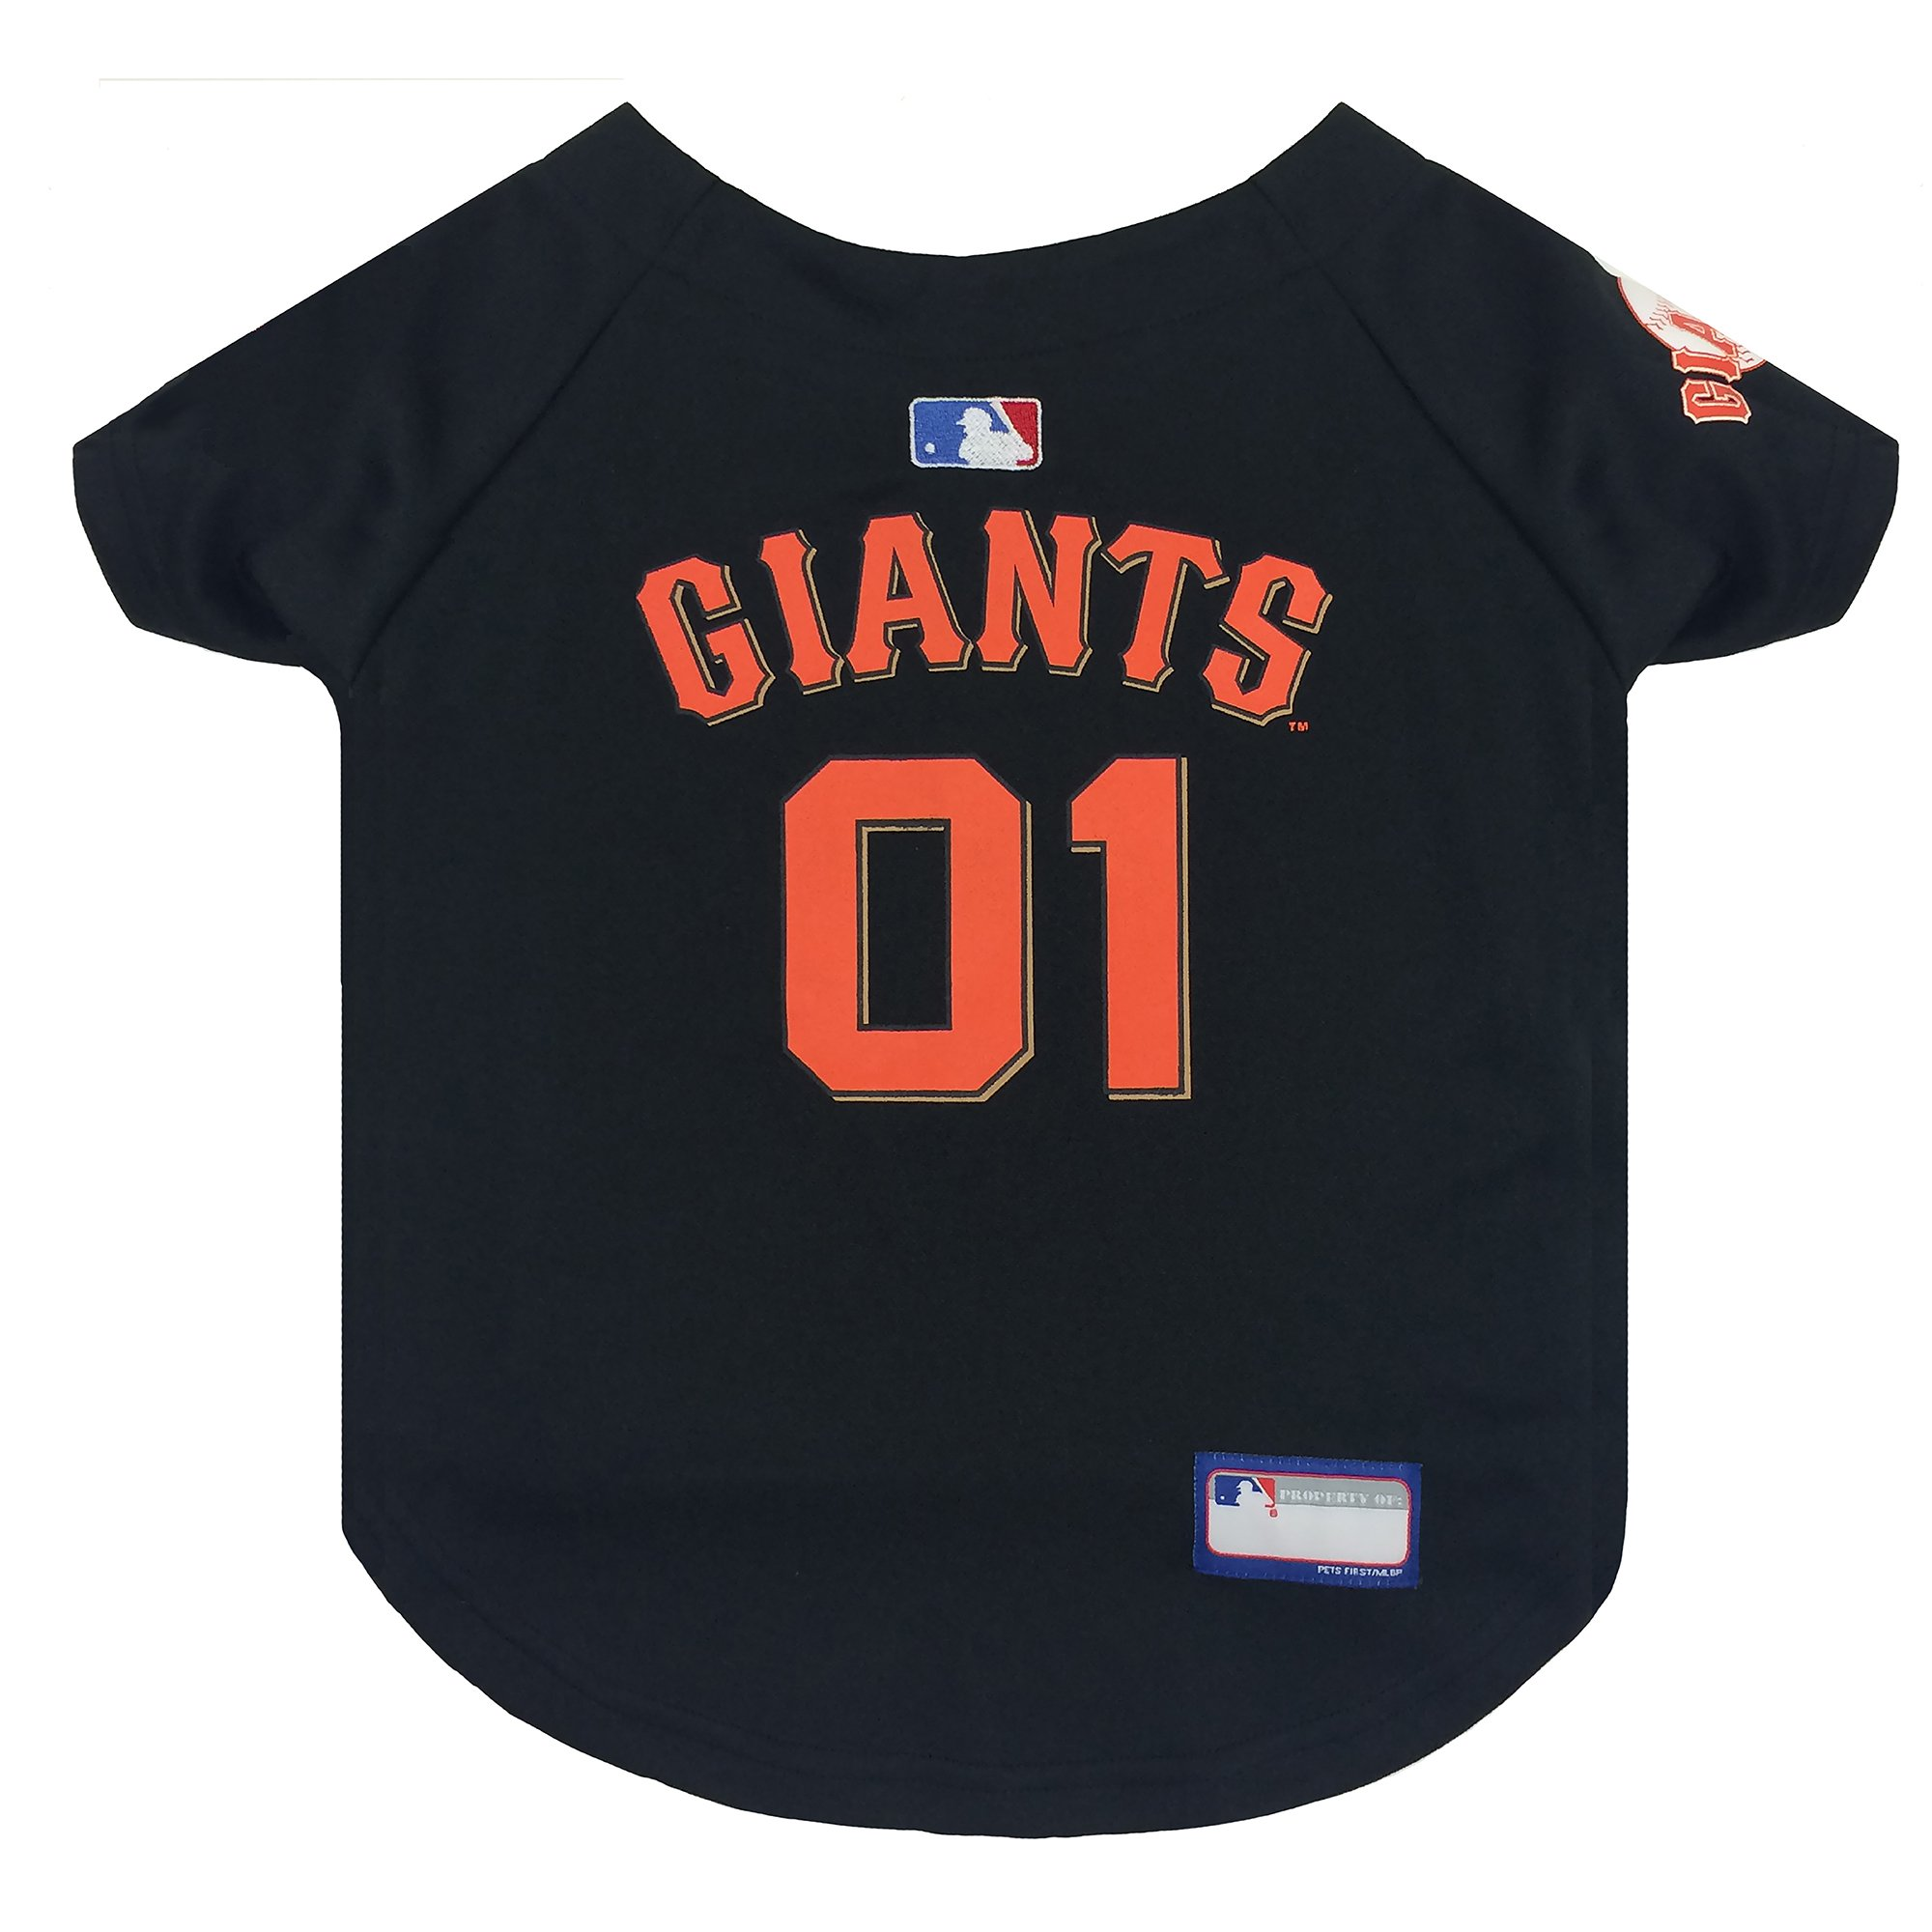 ff172e98a42 ... low cost pets first san francisco giants jersey petco 5efad 641b8